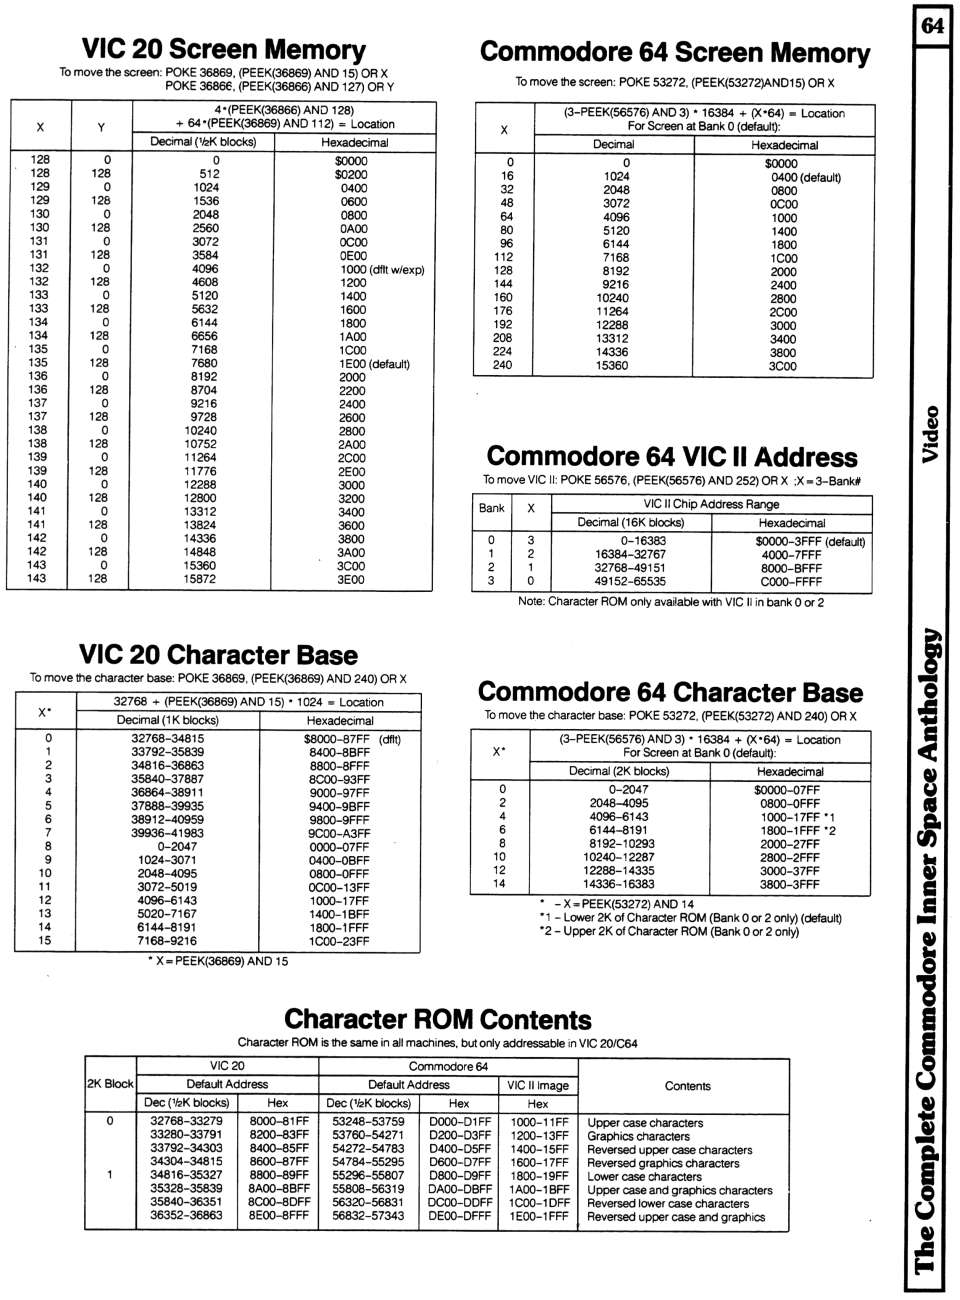 [960�1300 Video Section: VIC 20 Screen Memory Addresses, VIC 20 Character Base Addresses, Commodore 64 Screen Memory, Commodore 64 VIC II Chip Addresses, Commodore 64 Character Base, Character ROM Contents]